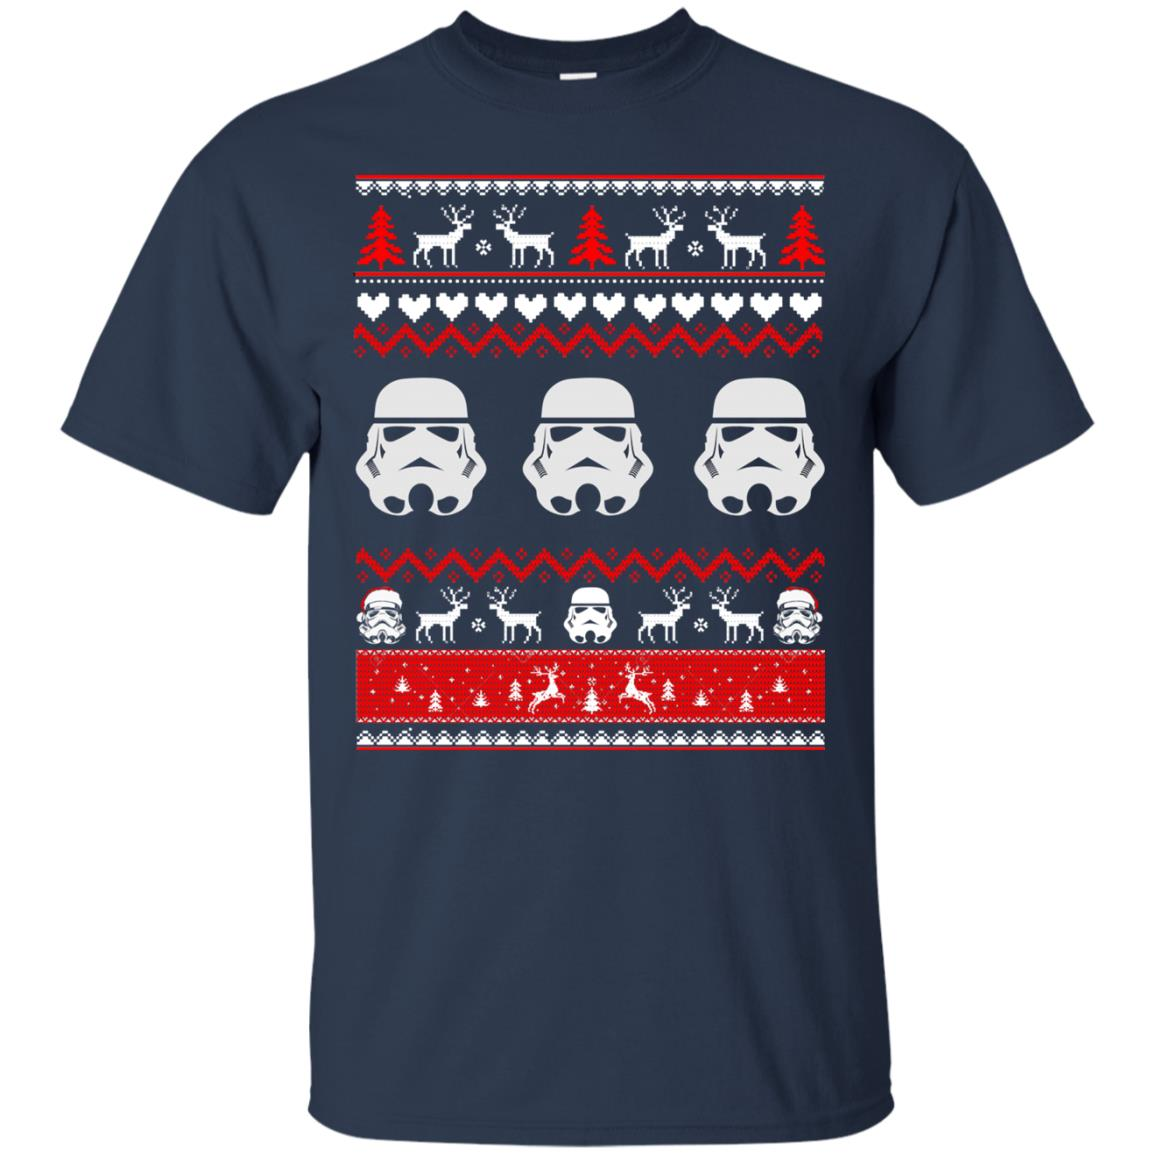 image 1723 - Stormtrooper Star Wars Ugly Christmas Sweatshirt, Shirt